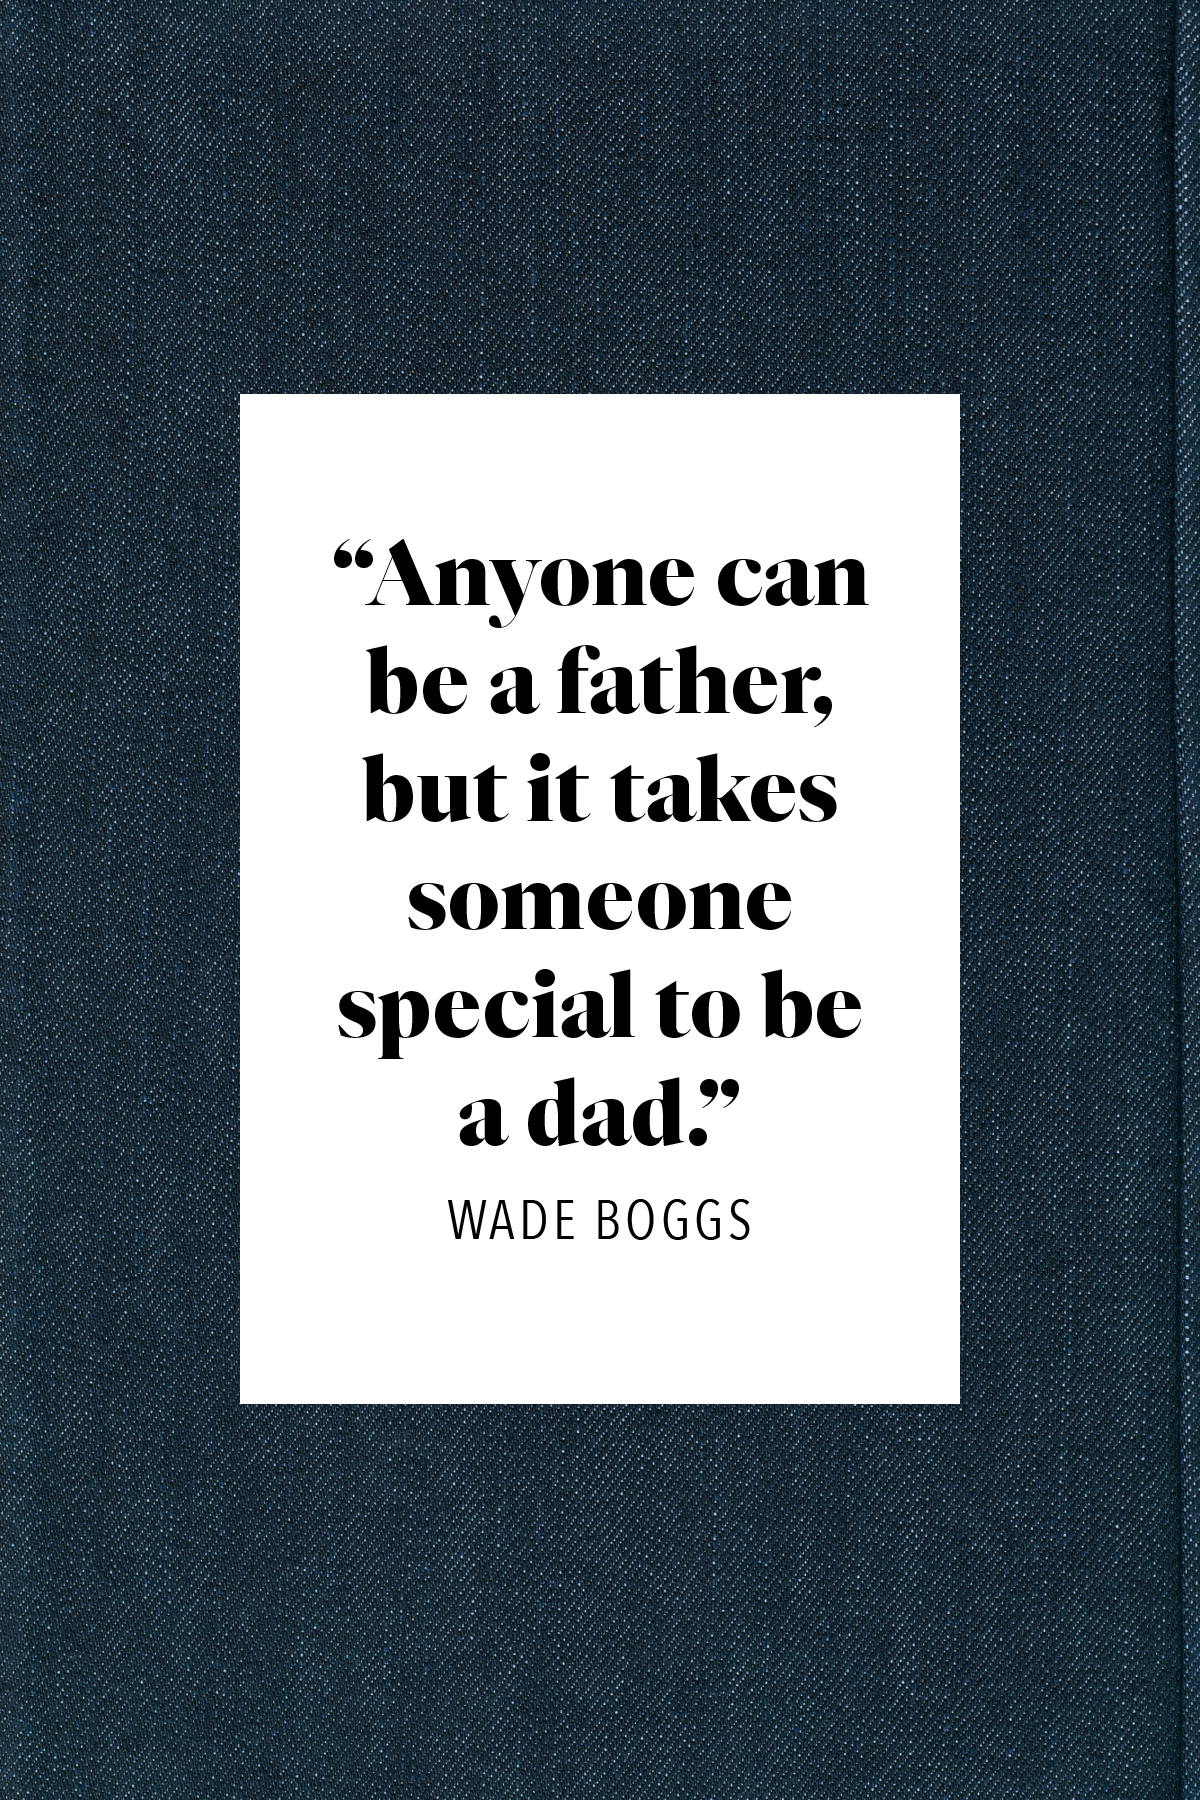 50 Best Father S Day Quotes 2020 Inspiring Sayings For Dad